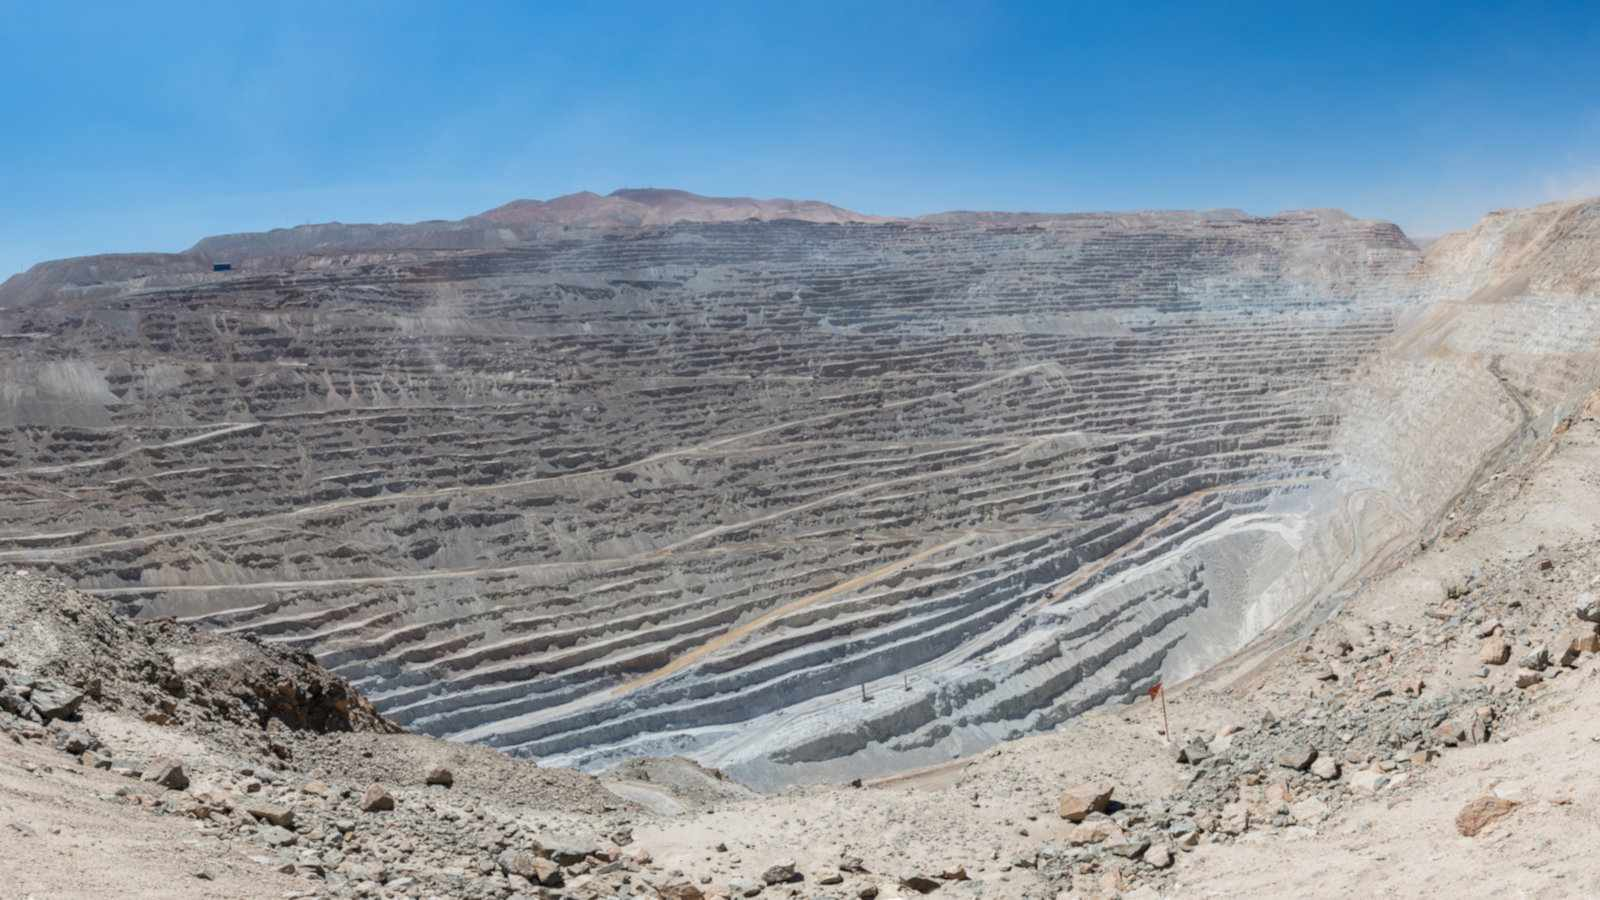 The largest copper mine in the world is Chuquicamata in Chile